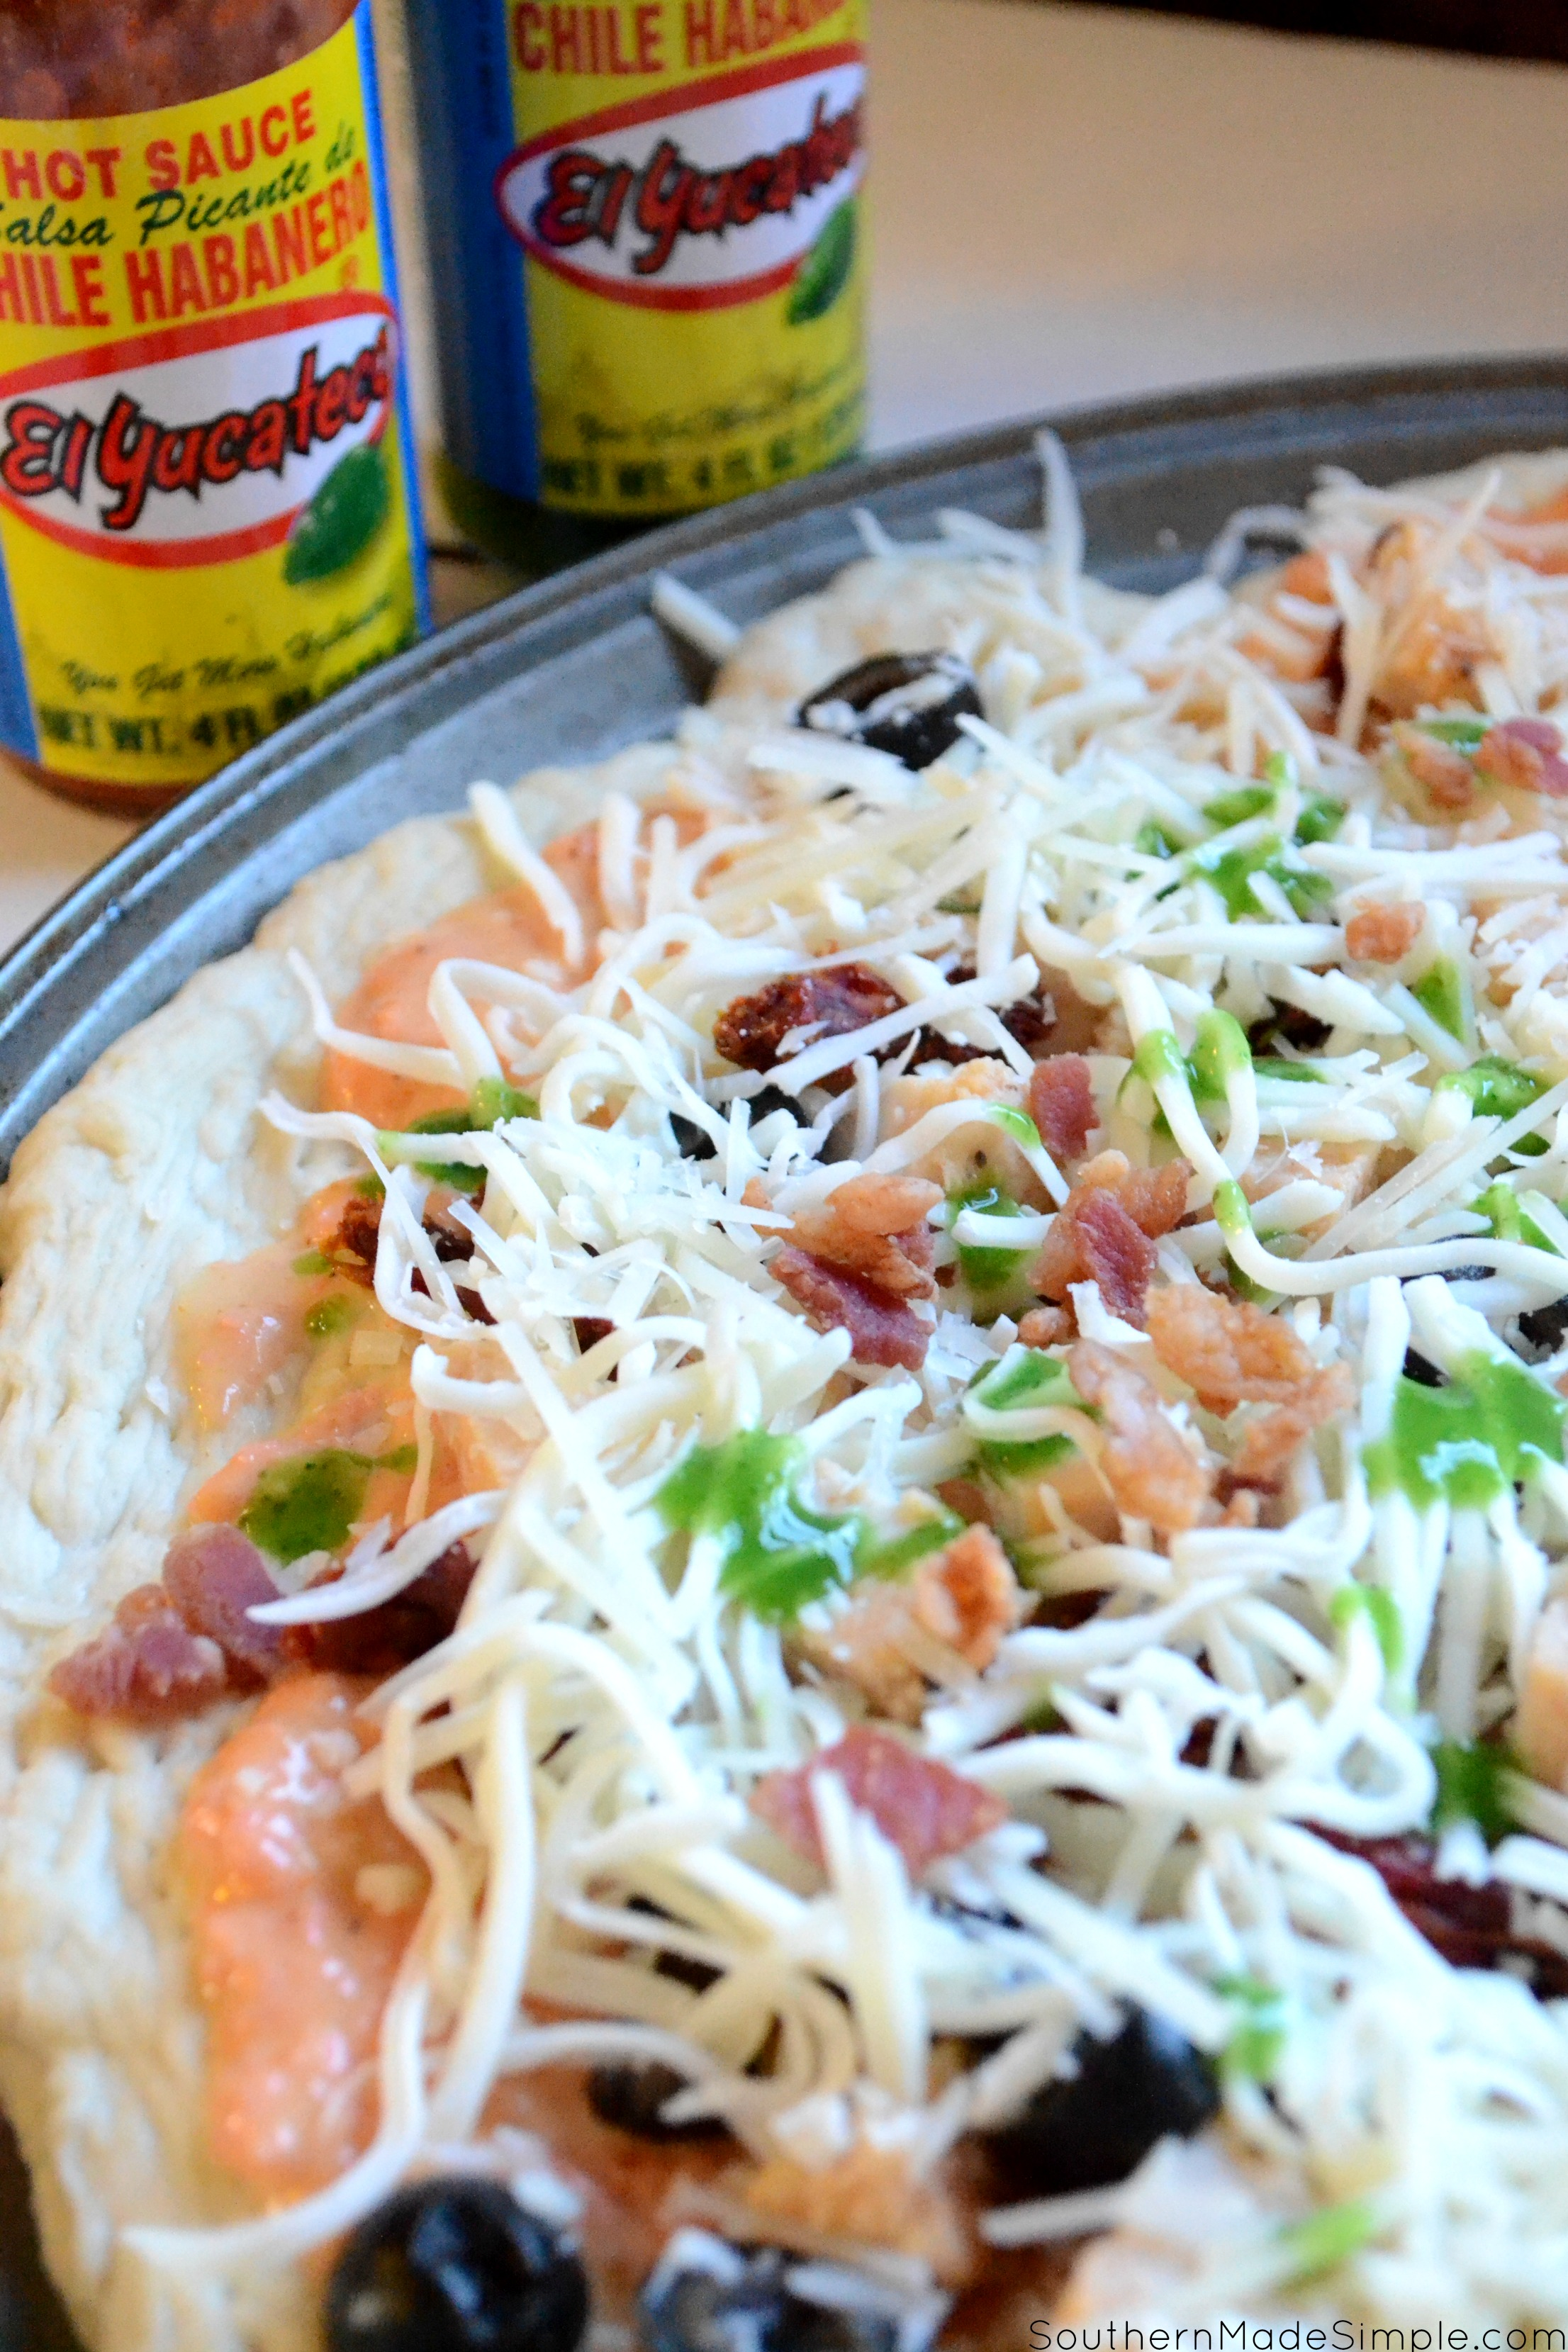 Looking for a fun way to pack some extra heat into your meal during the big game? This Spicy Habanero Alfredo Pizza will score a touchdown with your taste buds and will lead your tummy to a delicious victory dance! #KingofFlavor